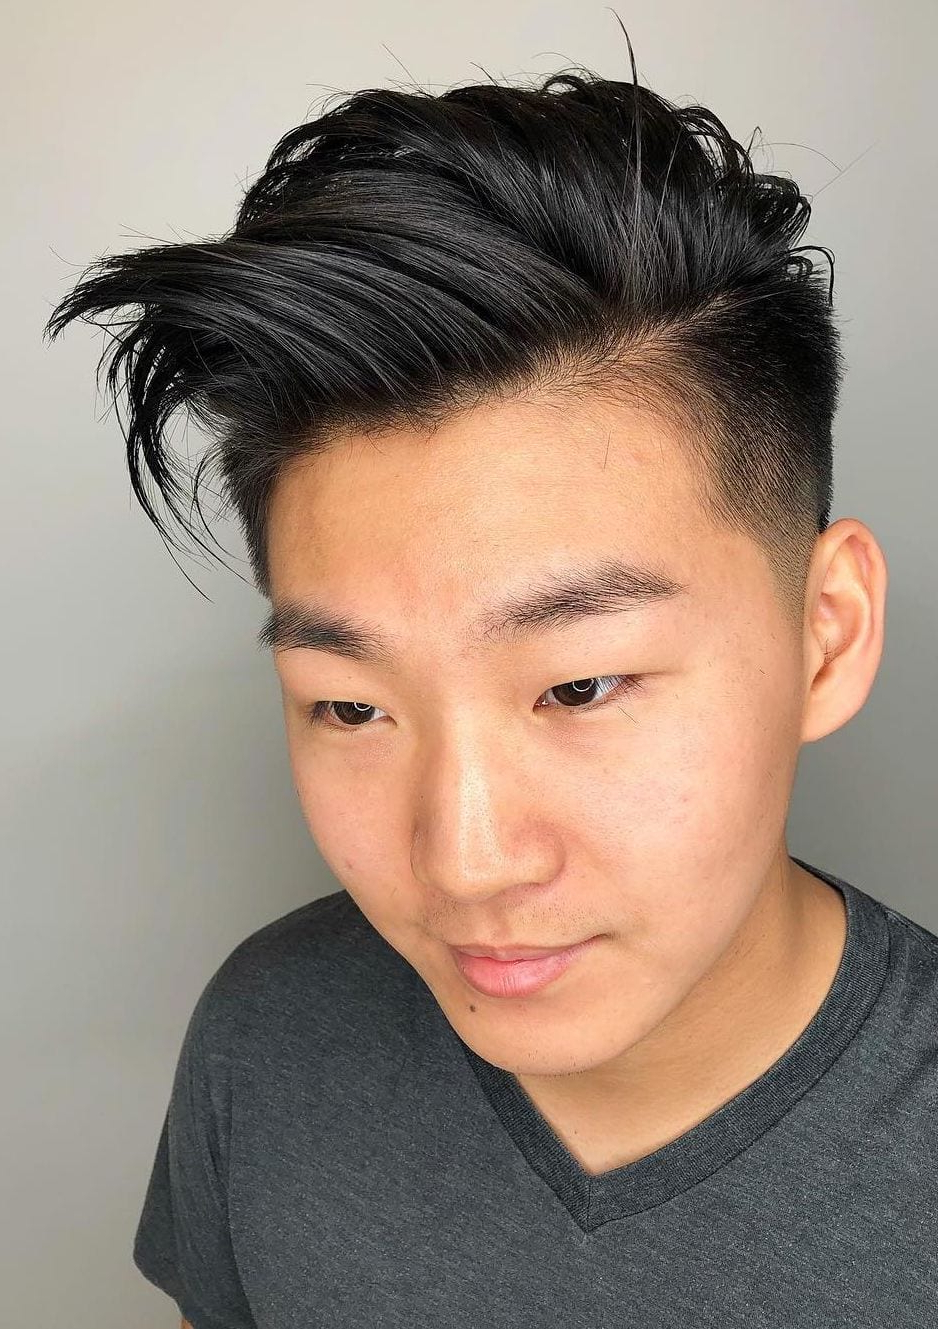 Top 30 Trendy Asian Men Hairstyles 2019 For Well Known Neon Long Asian Hairstyles (View 9 of 20)